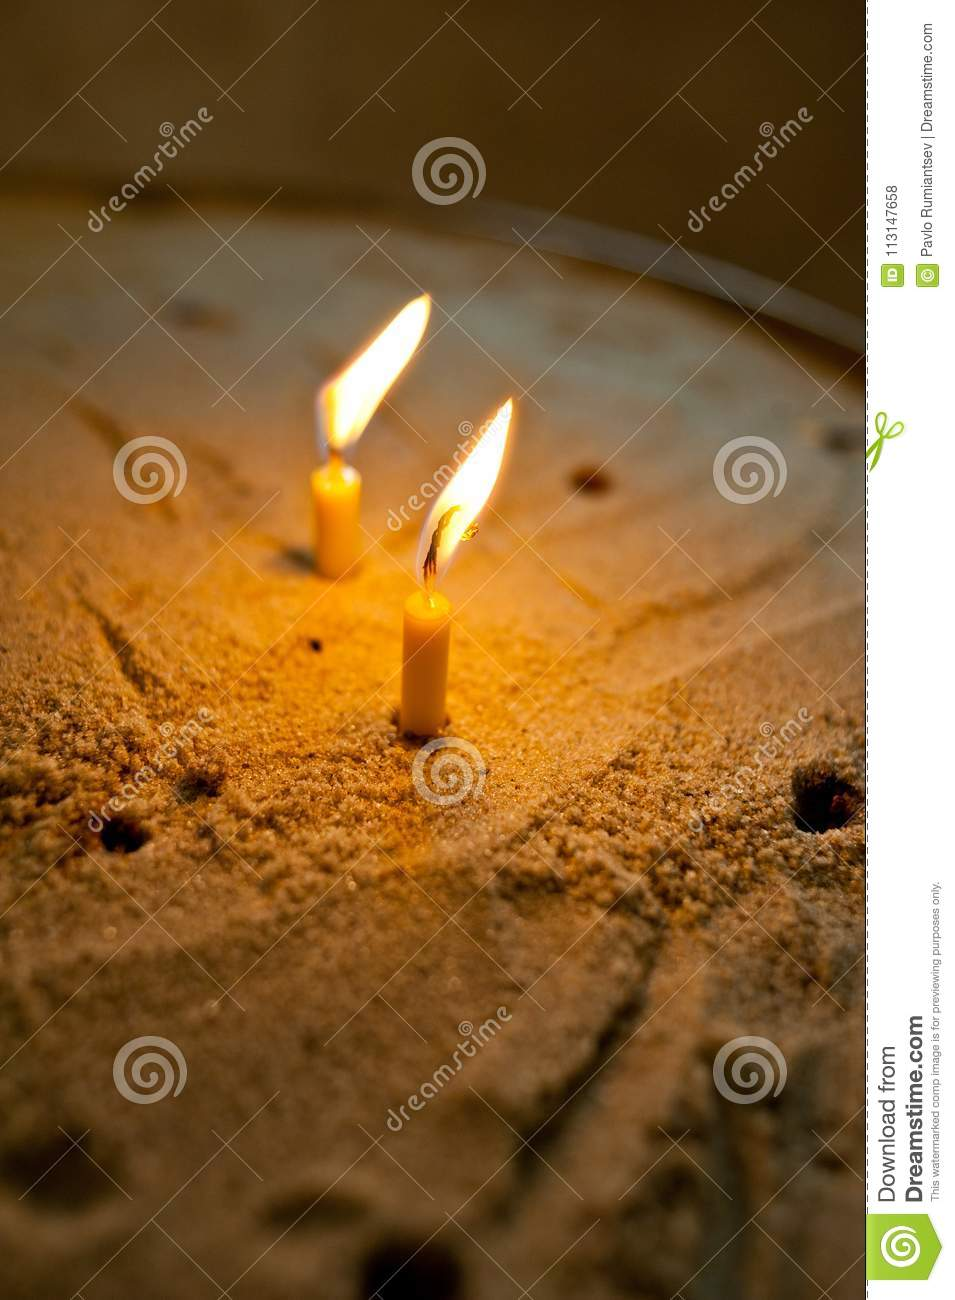 Two burning wax candles put in the sand